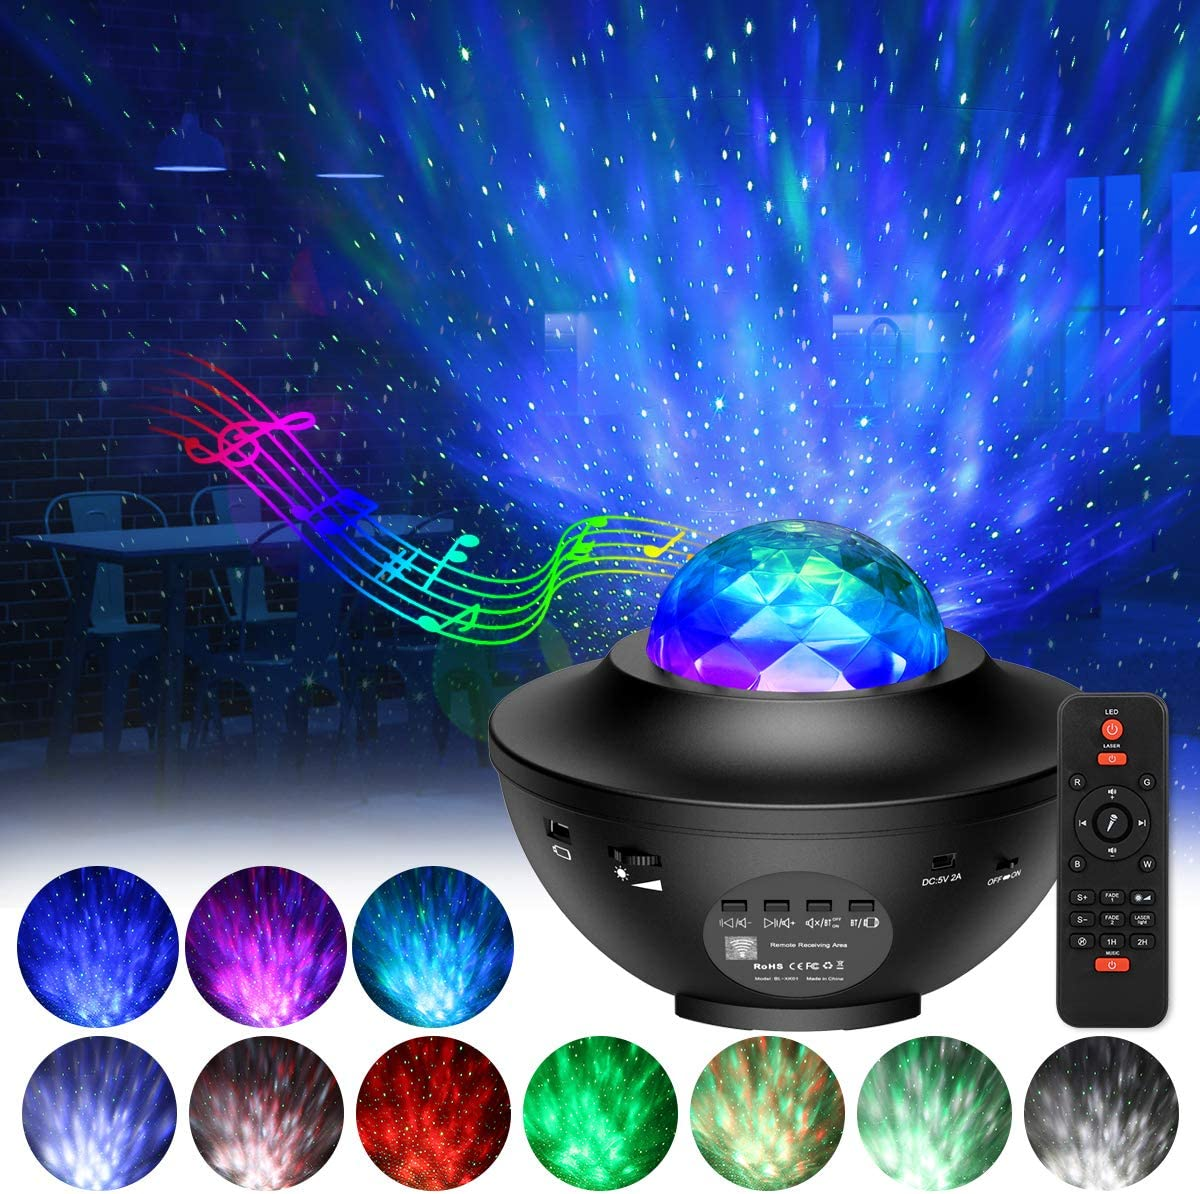 AMIR Upgraded Night Light Projector, Star Projector, Ocean Wave Projector, Night Light Projector with Bluetooth Speaker for Baby Kids Bedroom, Game Rooms, Home Theatre, Voice Control& Remote Control